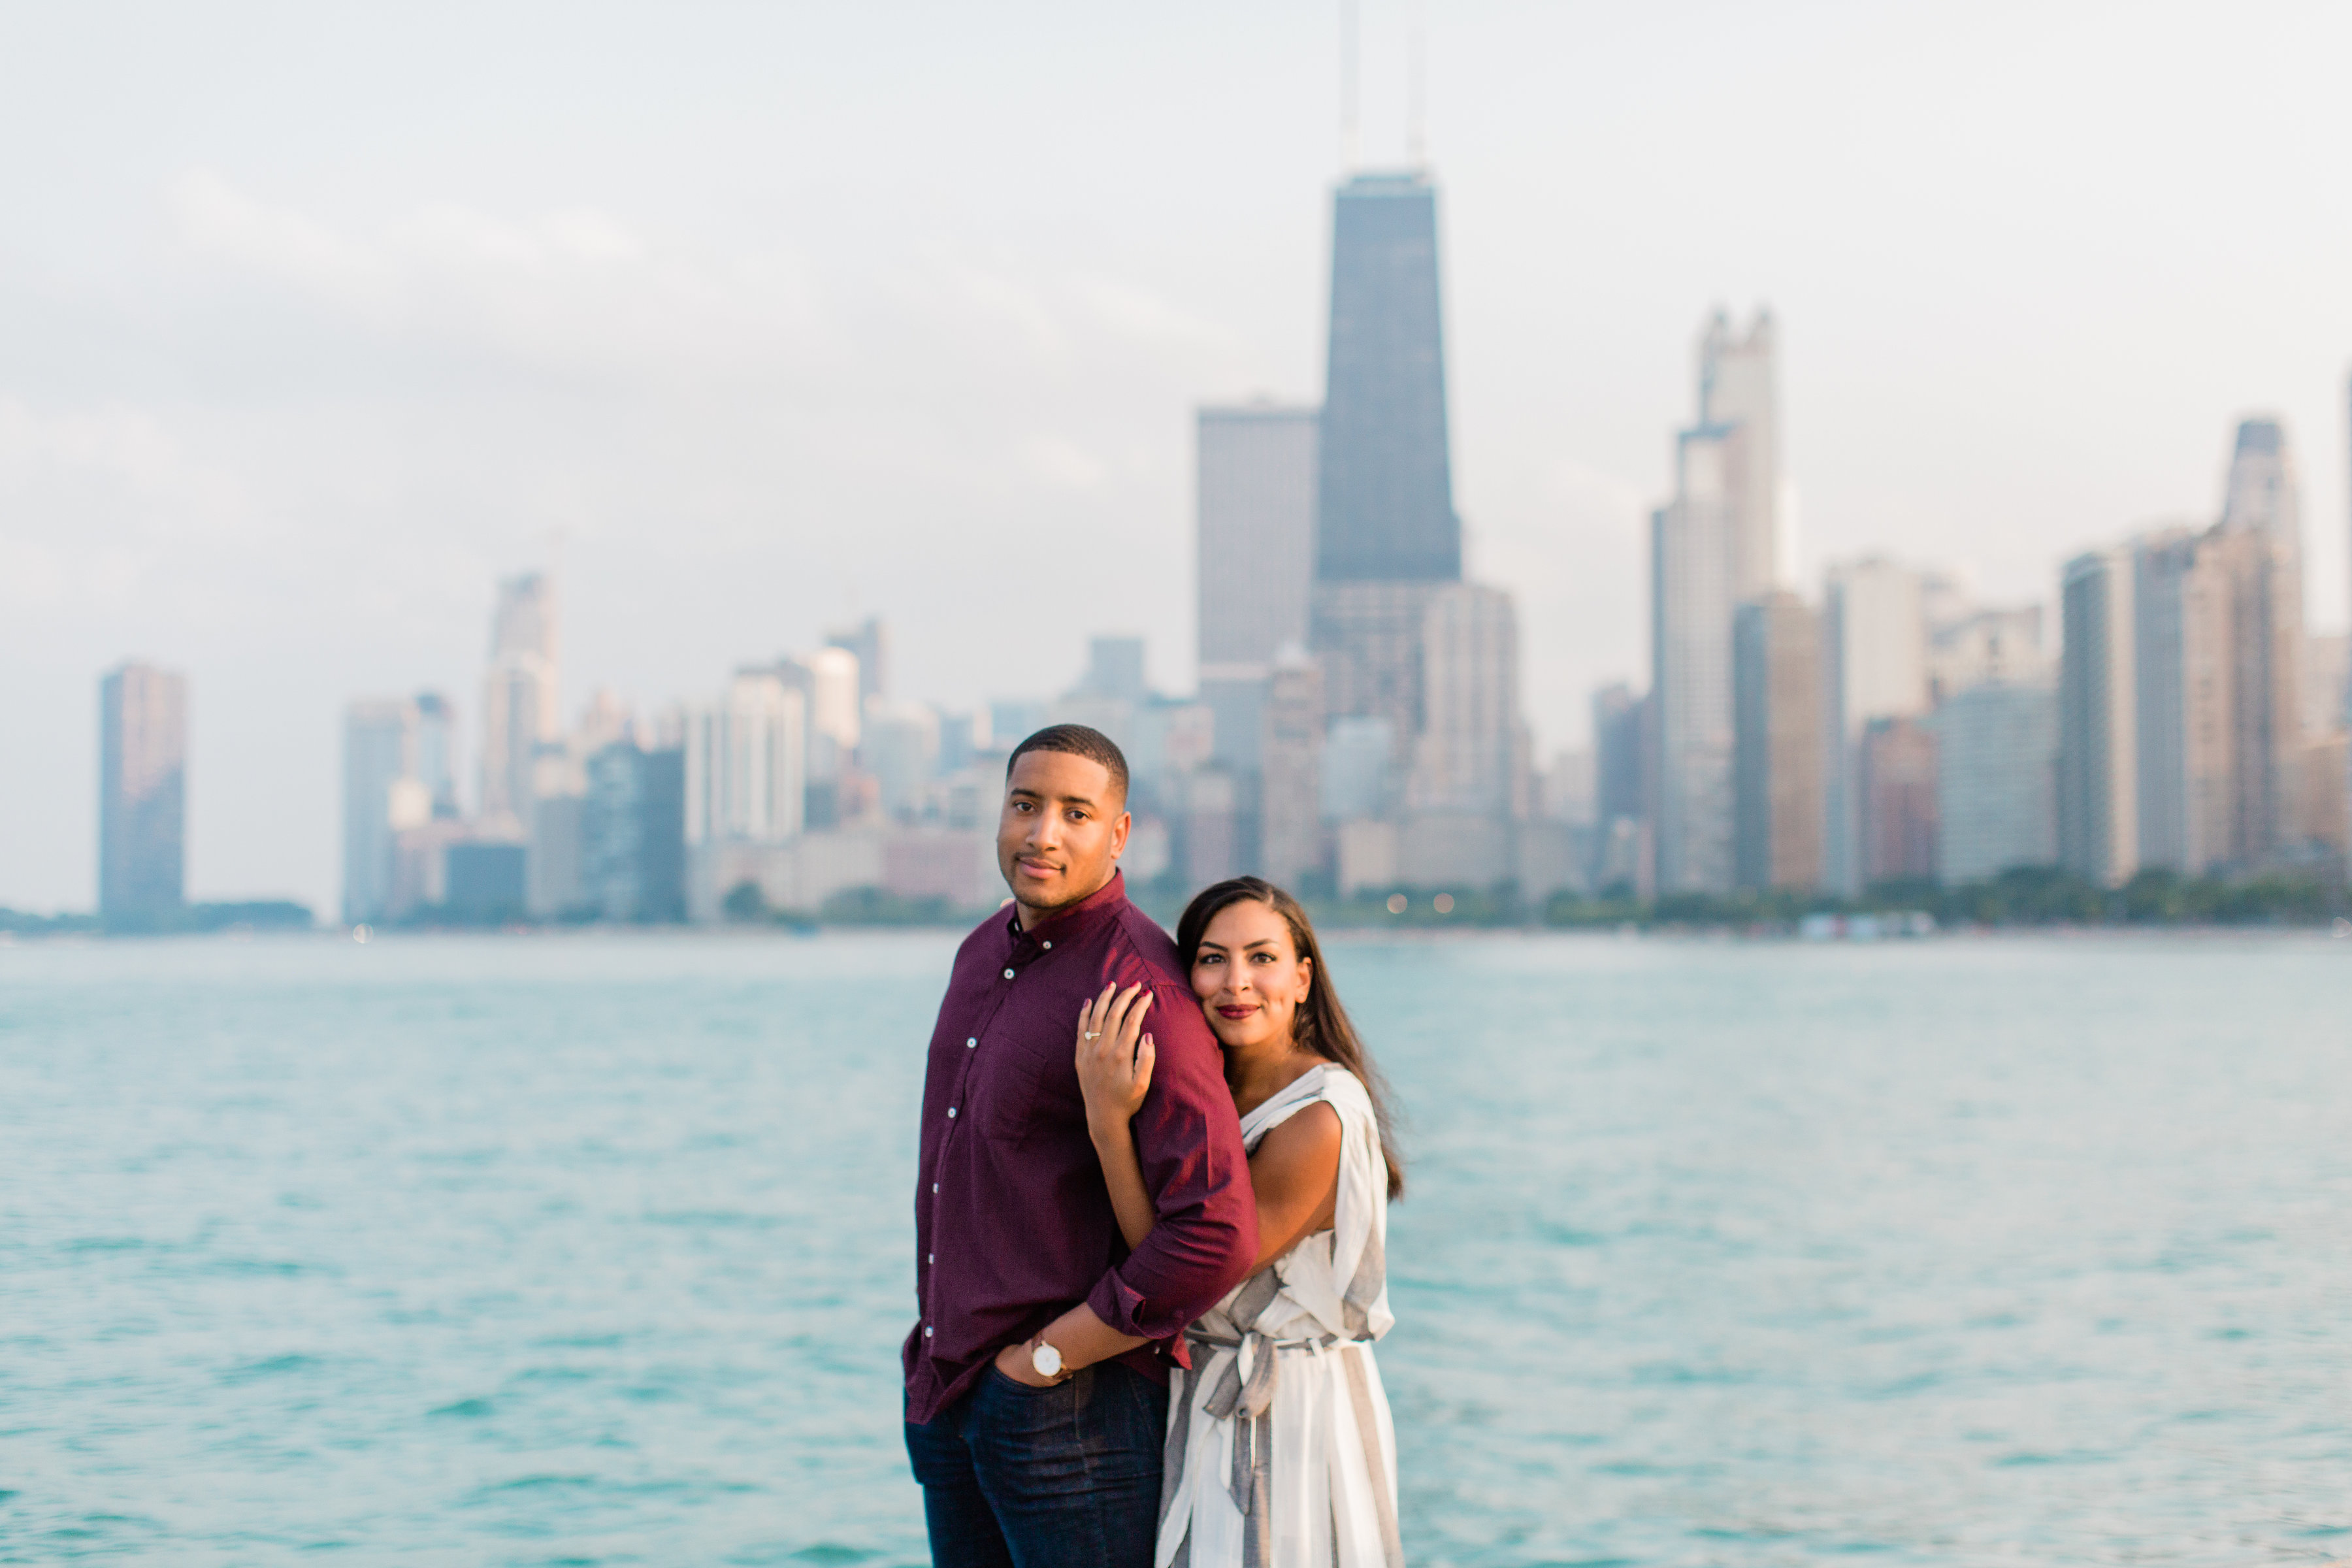 Lincoln Park Engagement Session Photography by Lauryn (24)